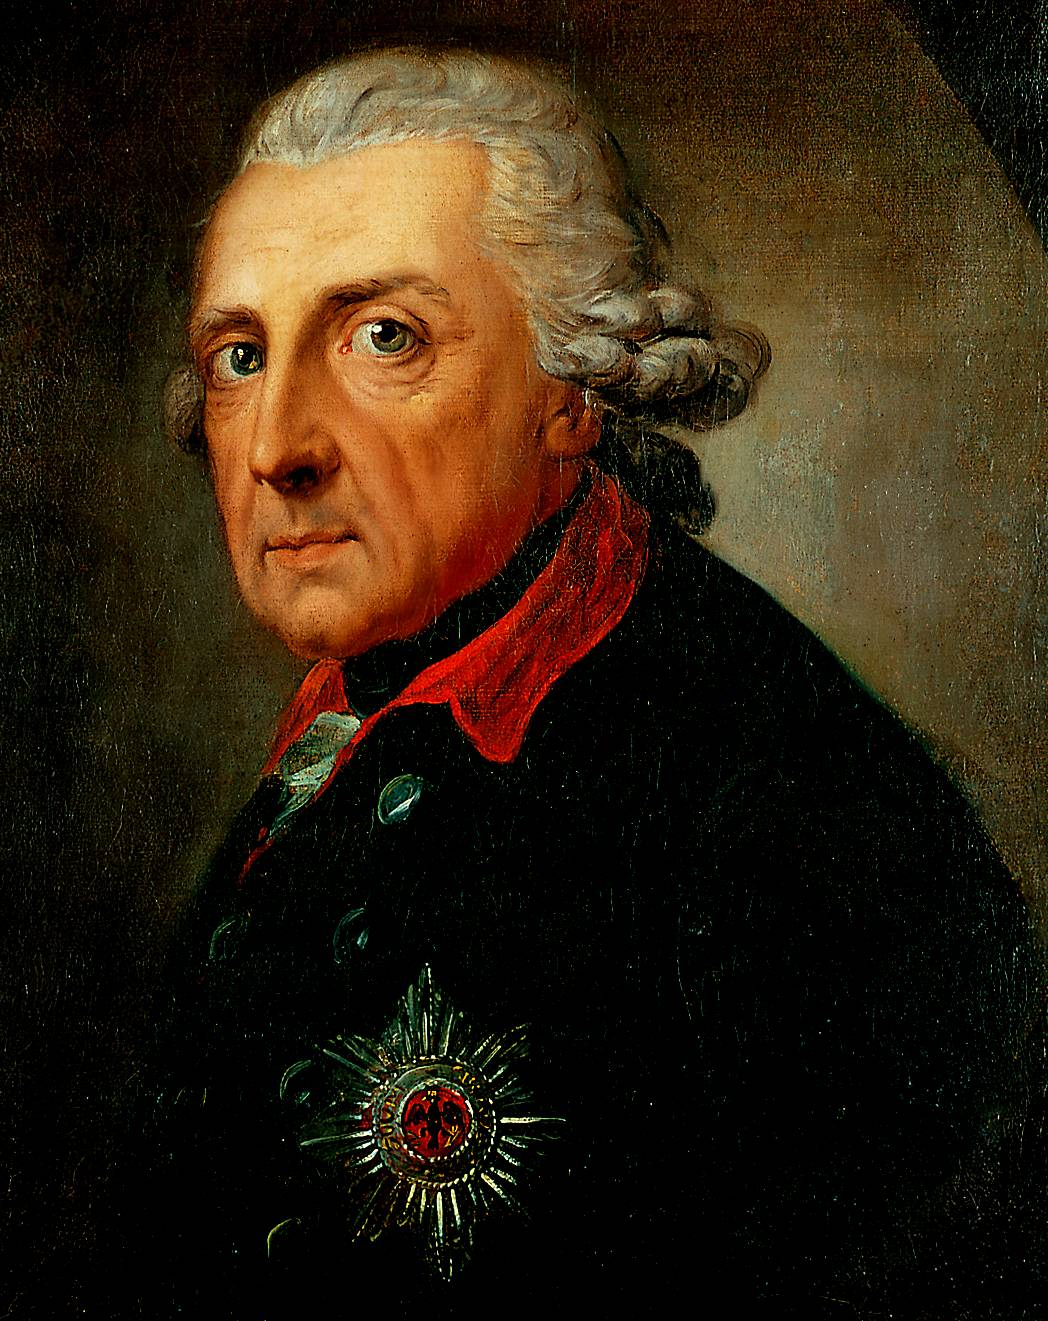 Frederick the Great